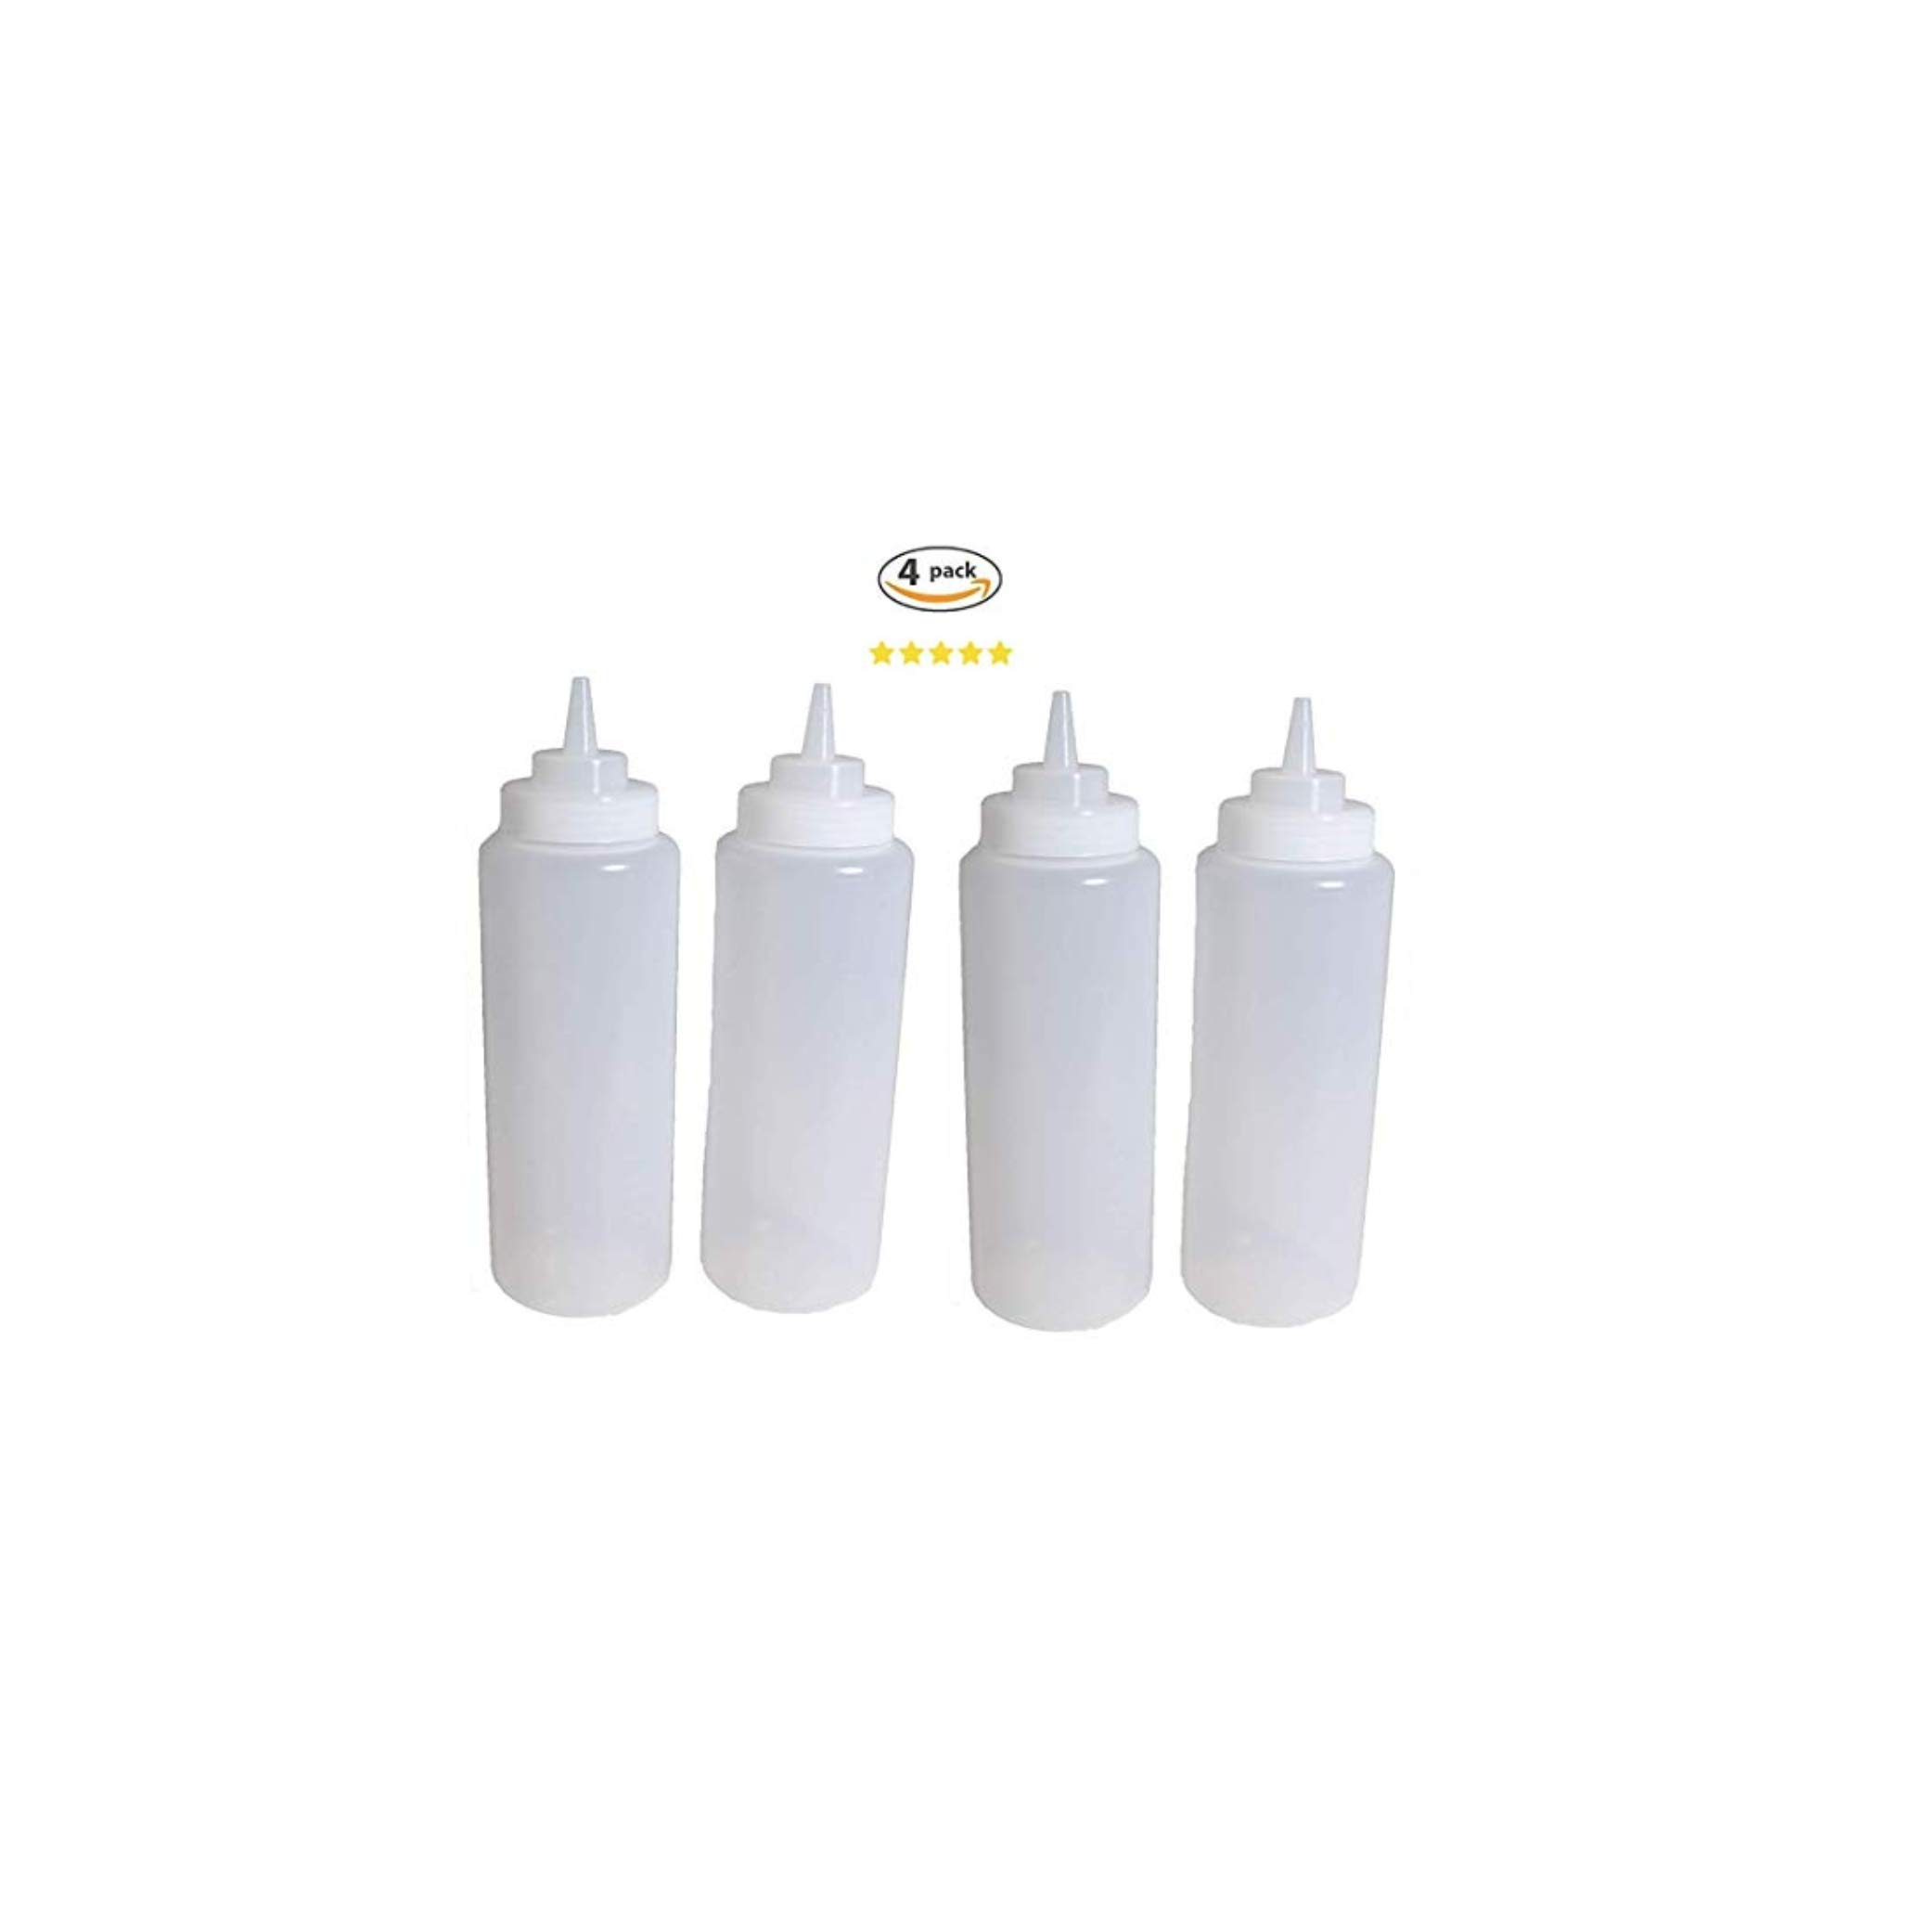 4 Plastic Squeeze Bottles. Clear Condiment Bottles. Ketchup. Mustard, Oil Squeeze Bottle. BBQ Grill Kitchen Cookout Storage Squeeze Bottles. by KITCHEN TOOLS (Image #1)